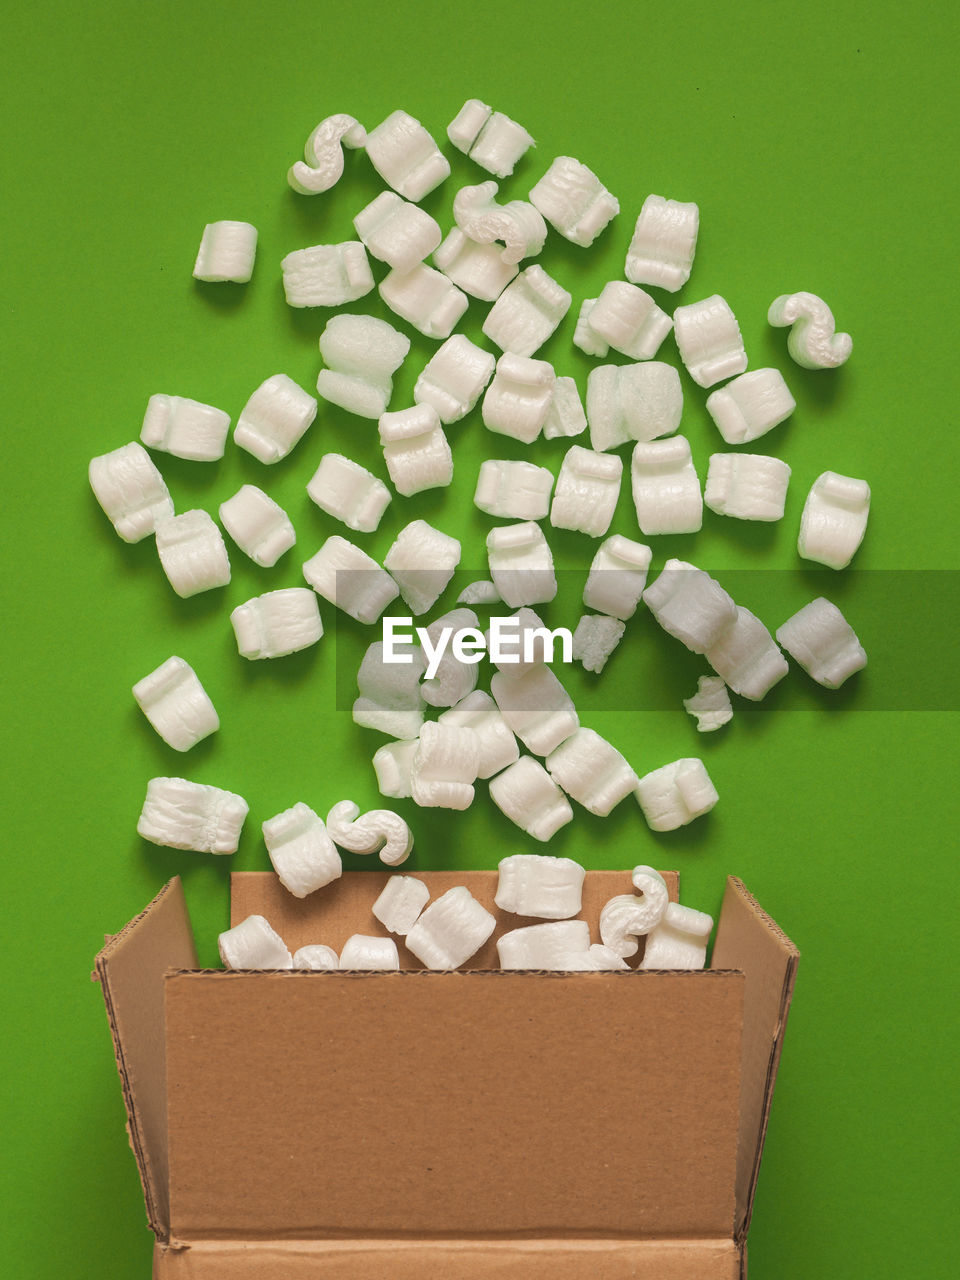 large group of objects, indoors, container, still life, studio shot, colored background, green background, no people, white color, box, green color, close-up, medicine, abundance, box - container, cardboard box, cardboard, brown, polystyrene, healthcare and medicine, package, sugar cube